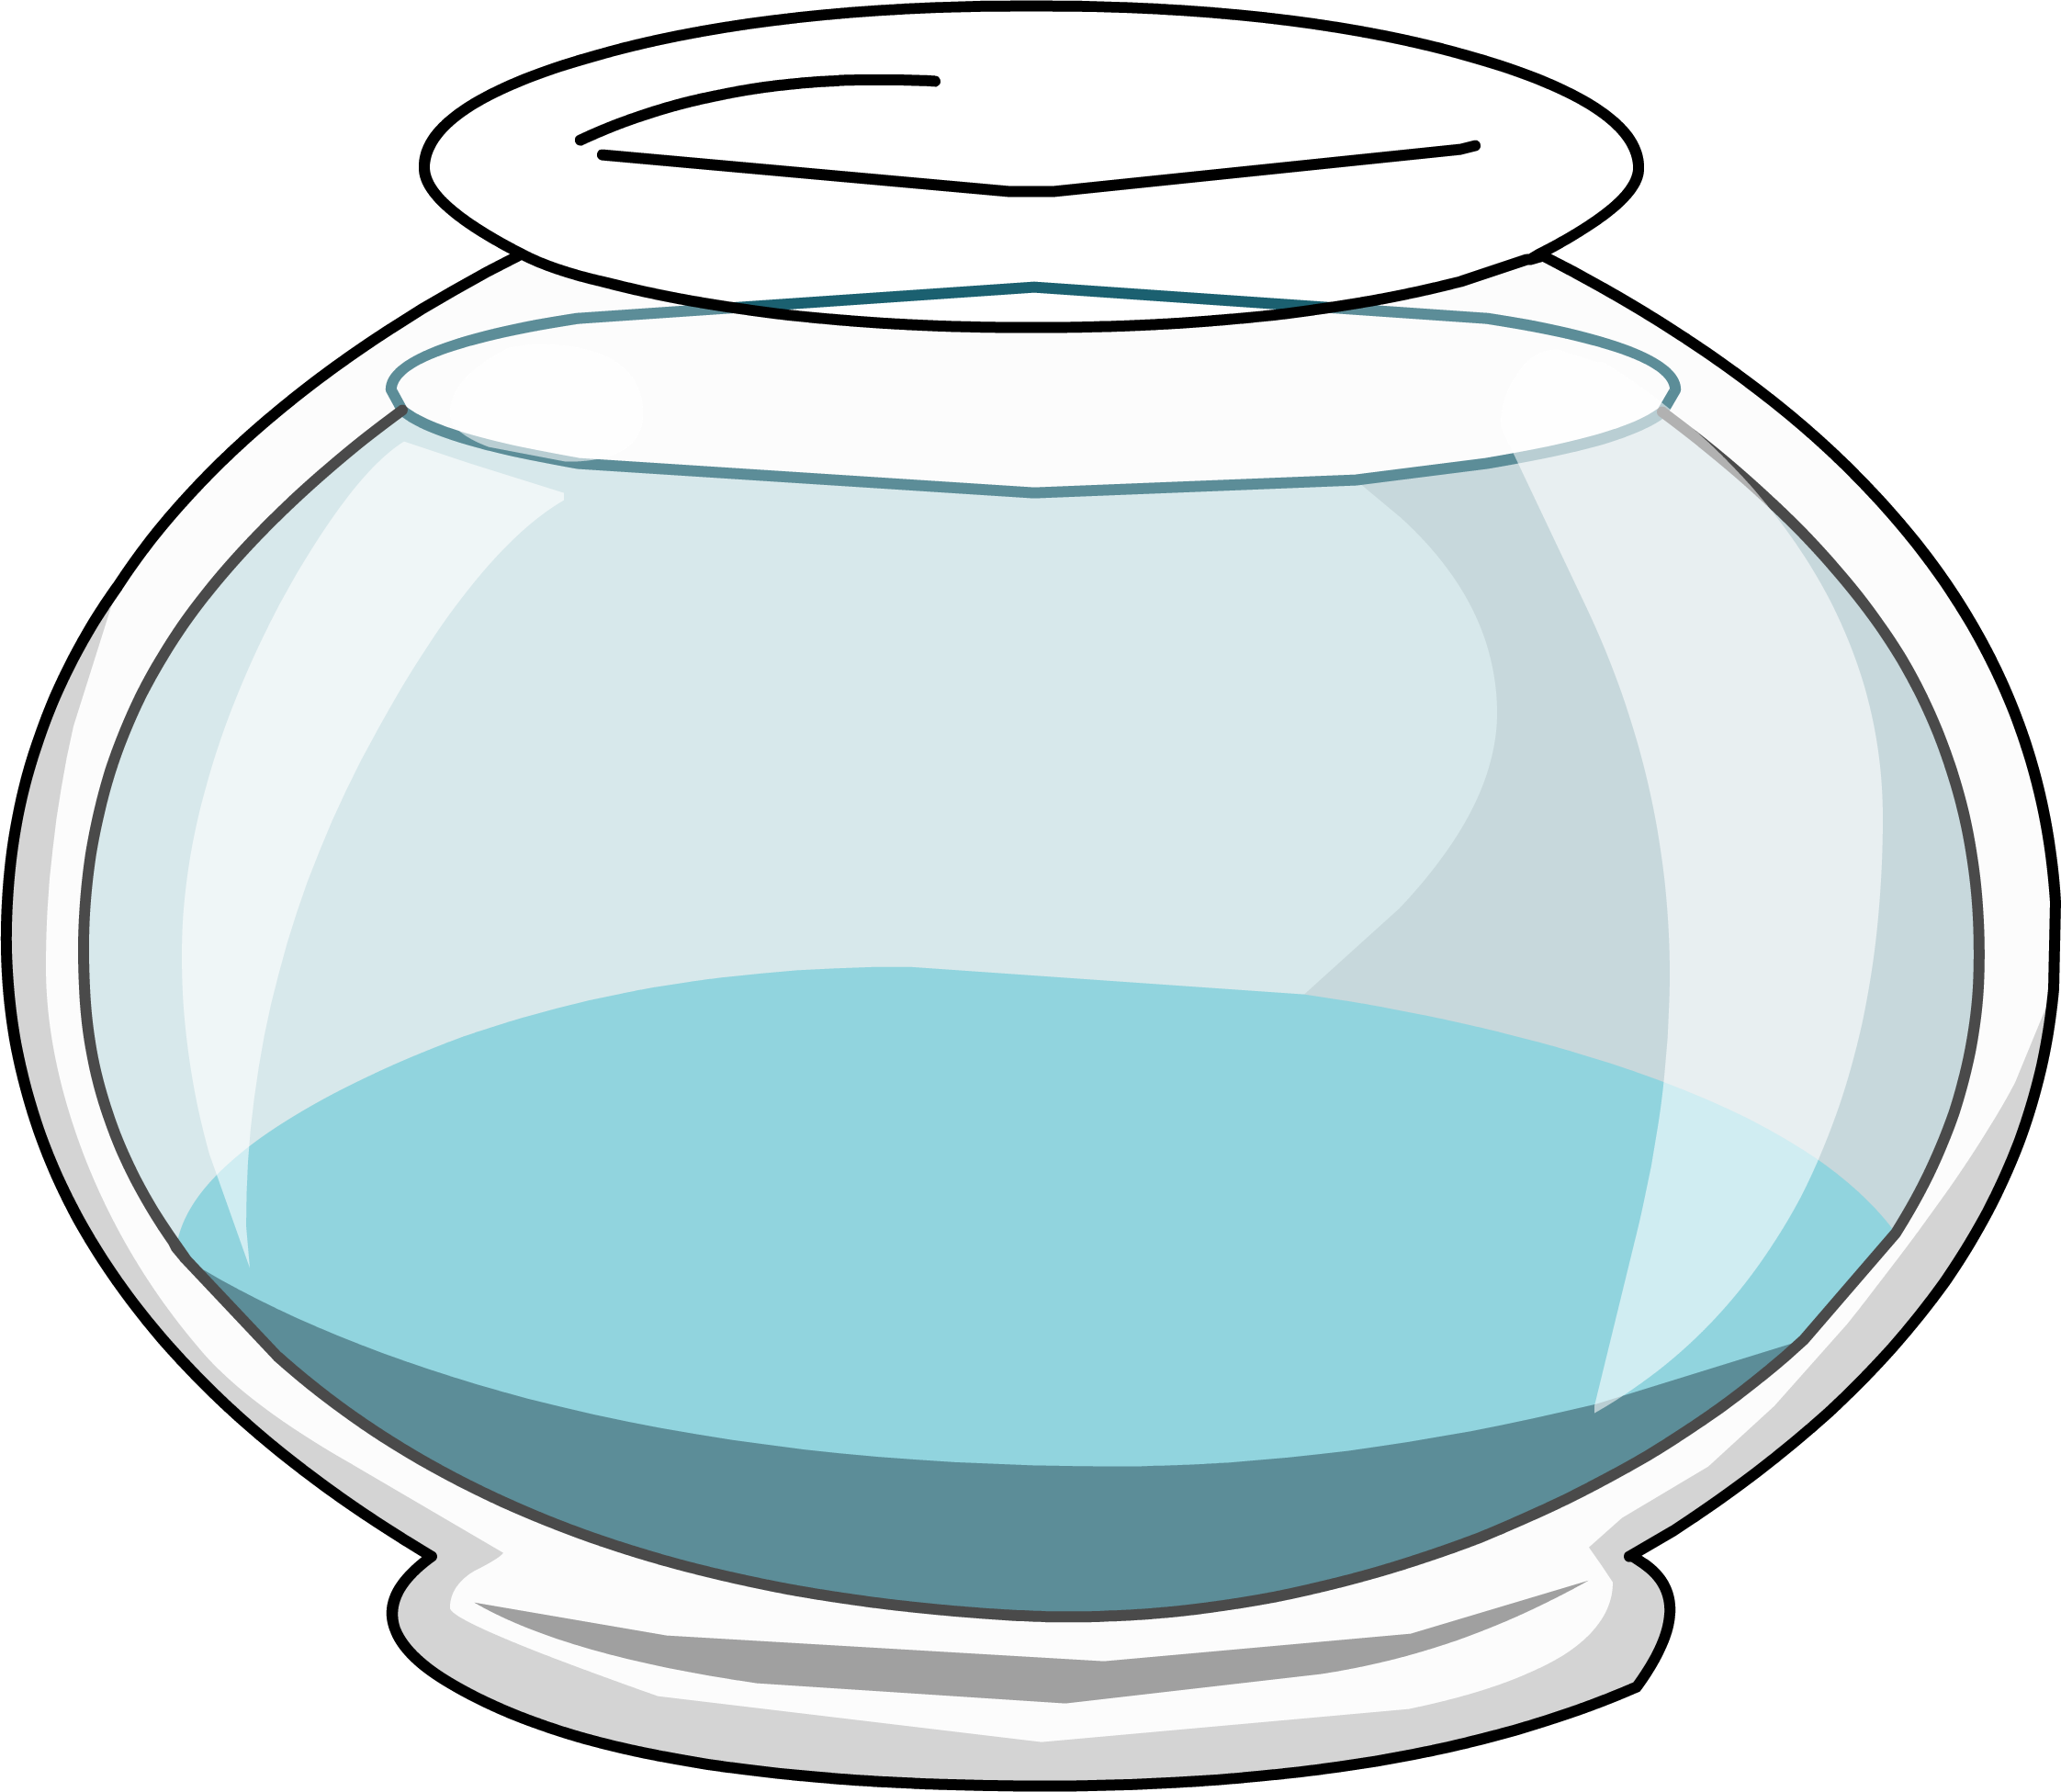 2244x1951 Clipart fishbowl